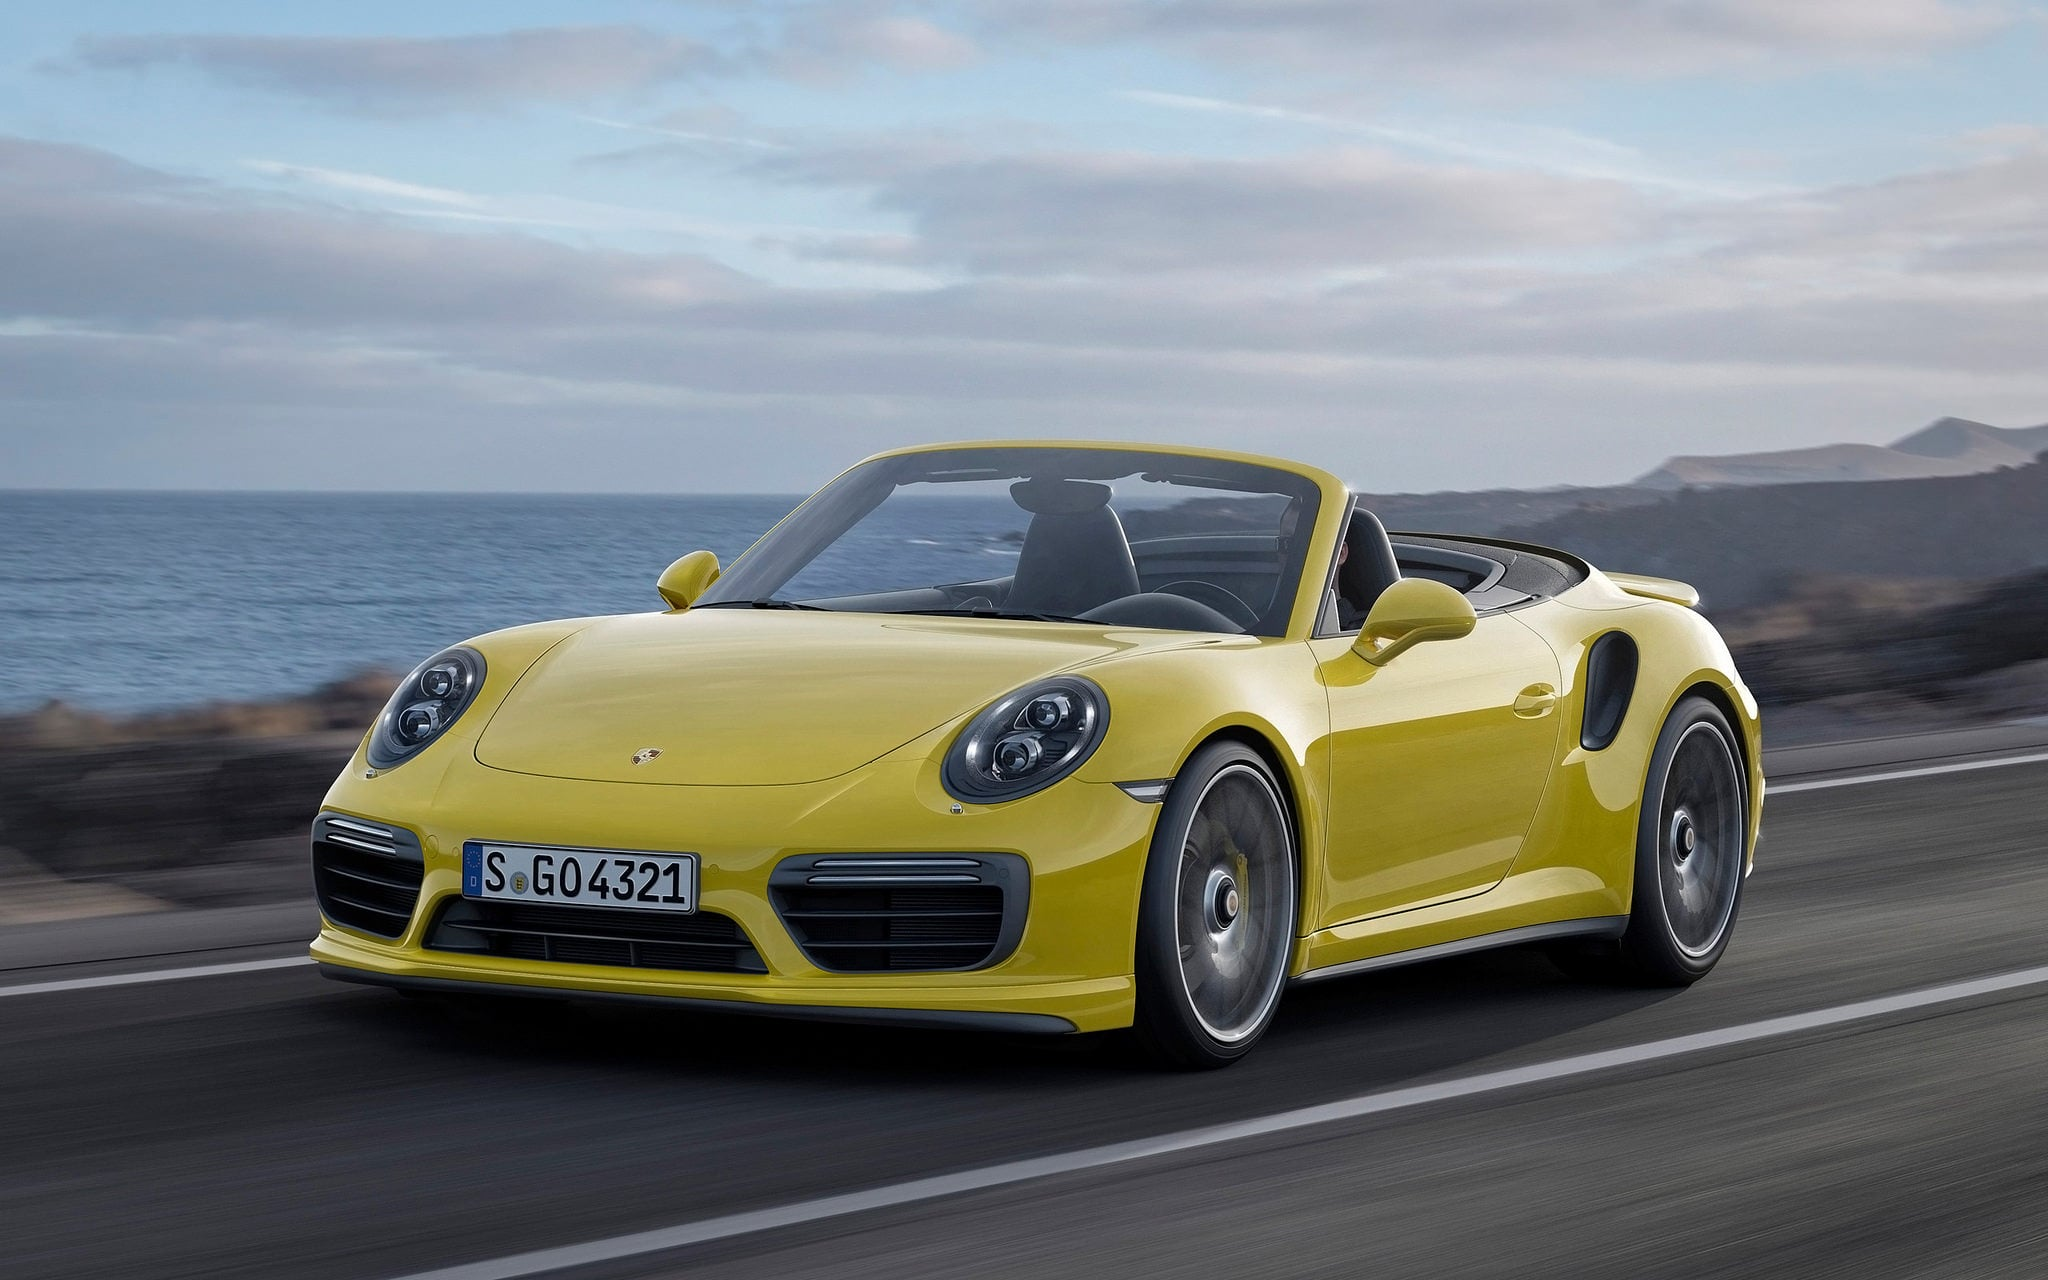 Super Hd Wallpapers 2016 Porsche 911 Turbo S Cabriolet Wallpapers Hd